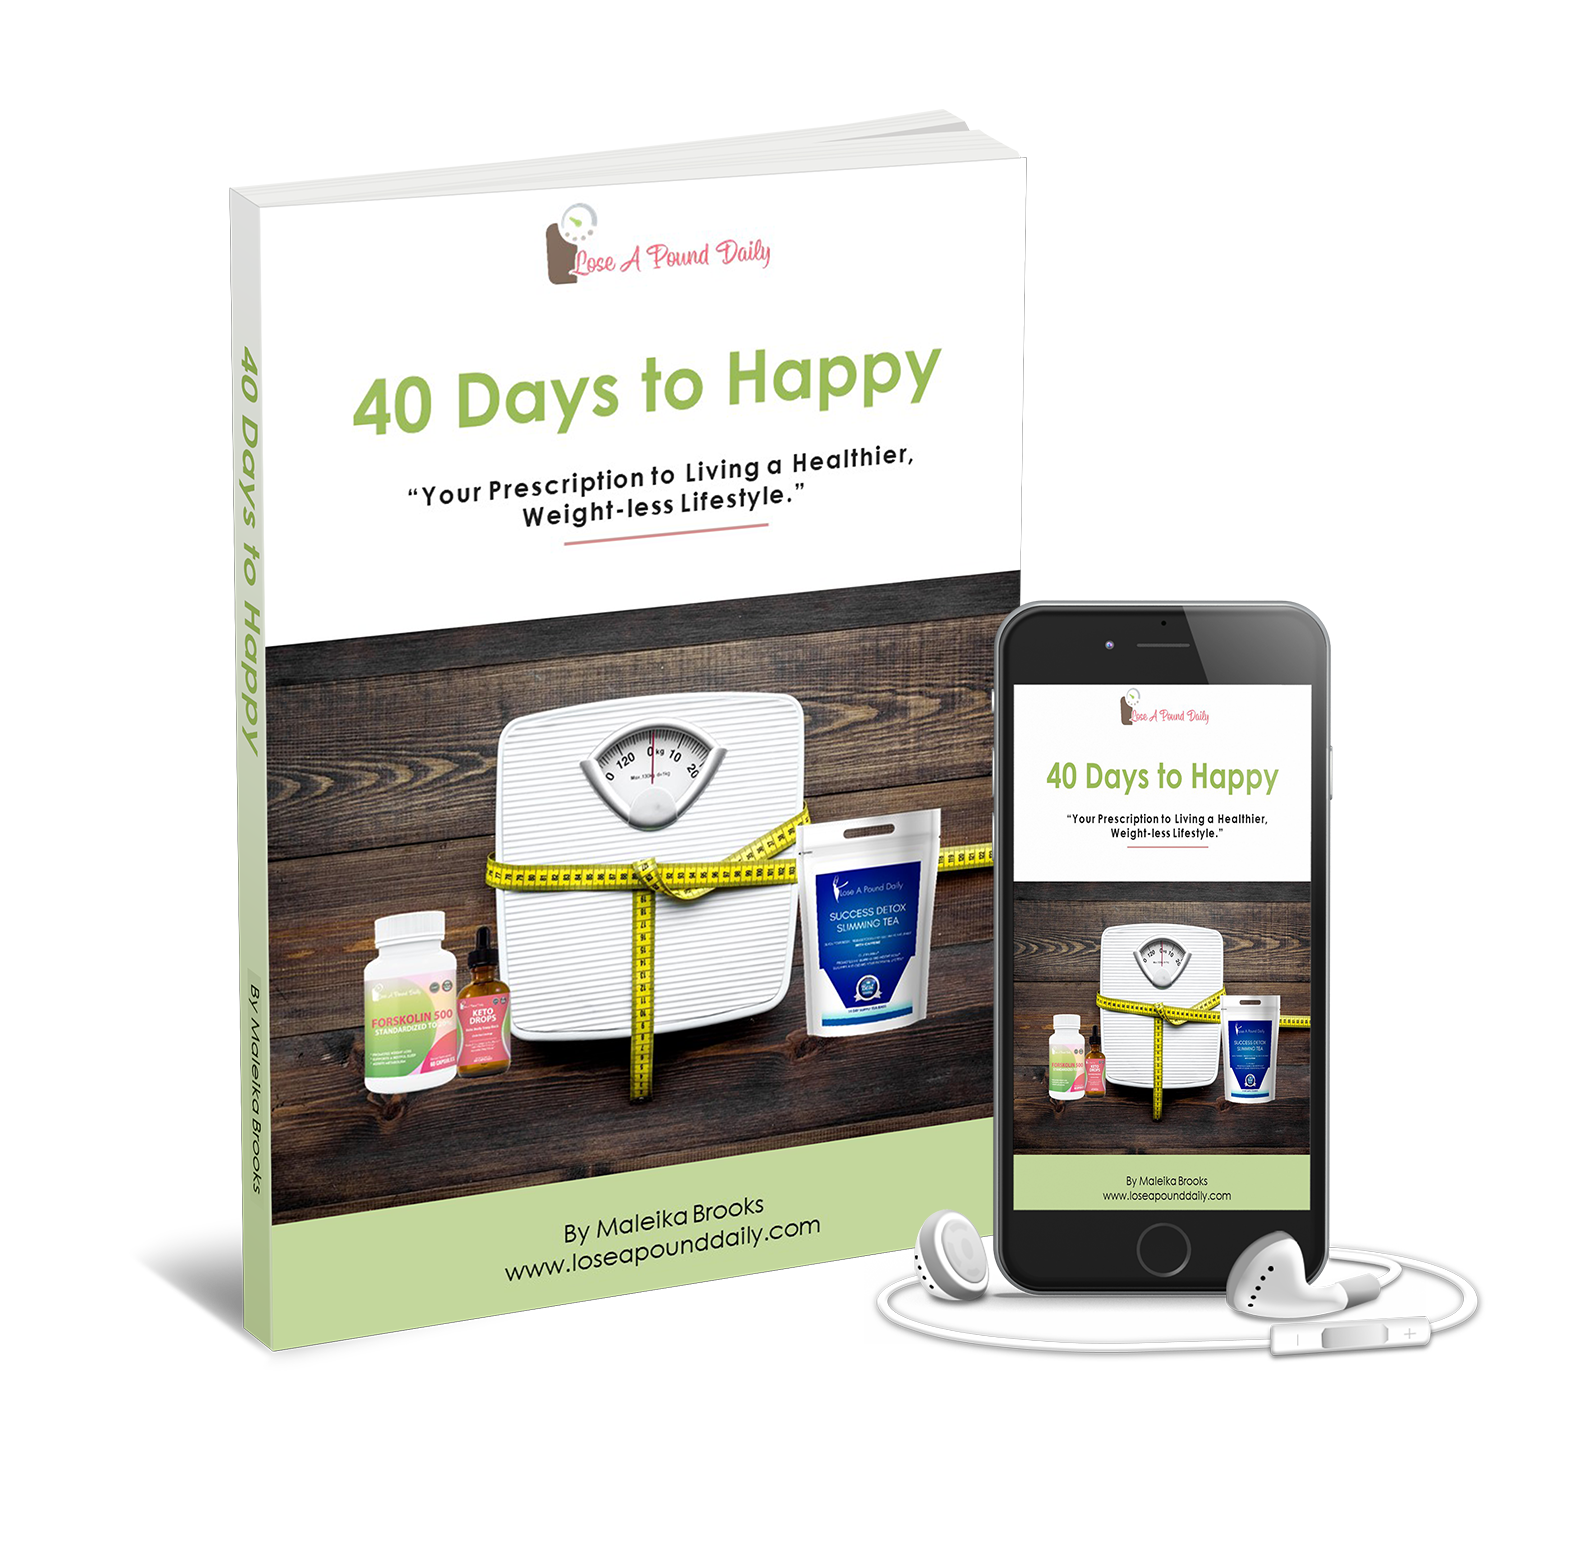 Lose A Pound Daily how to get started